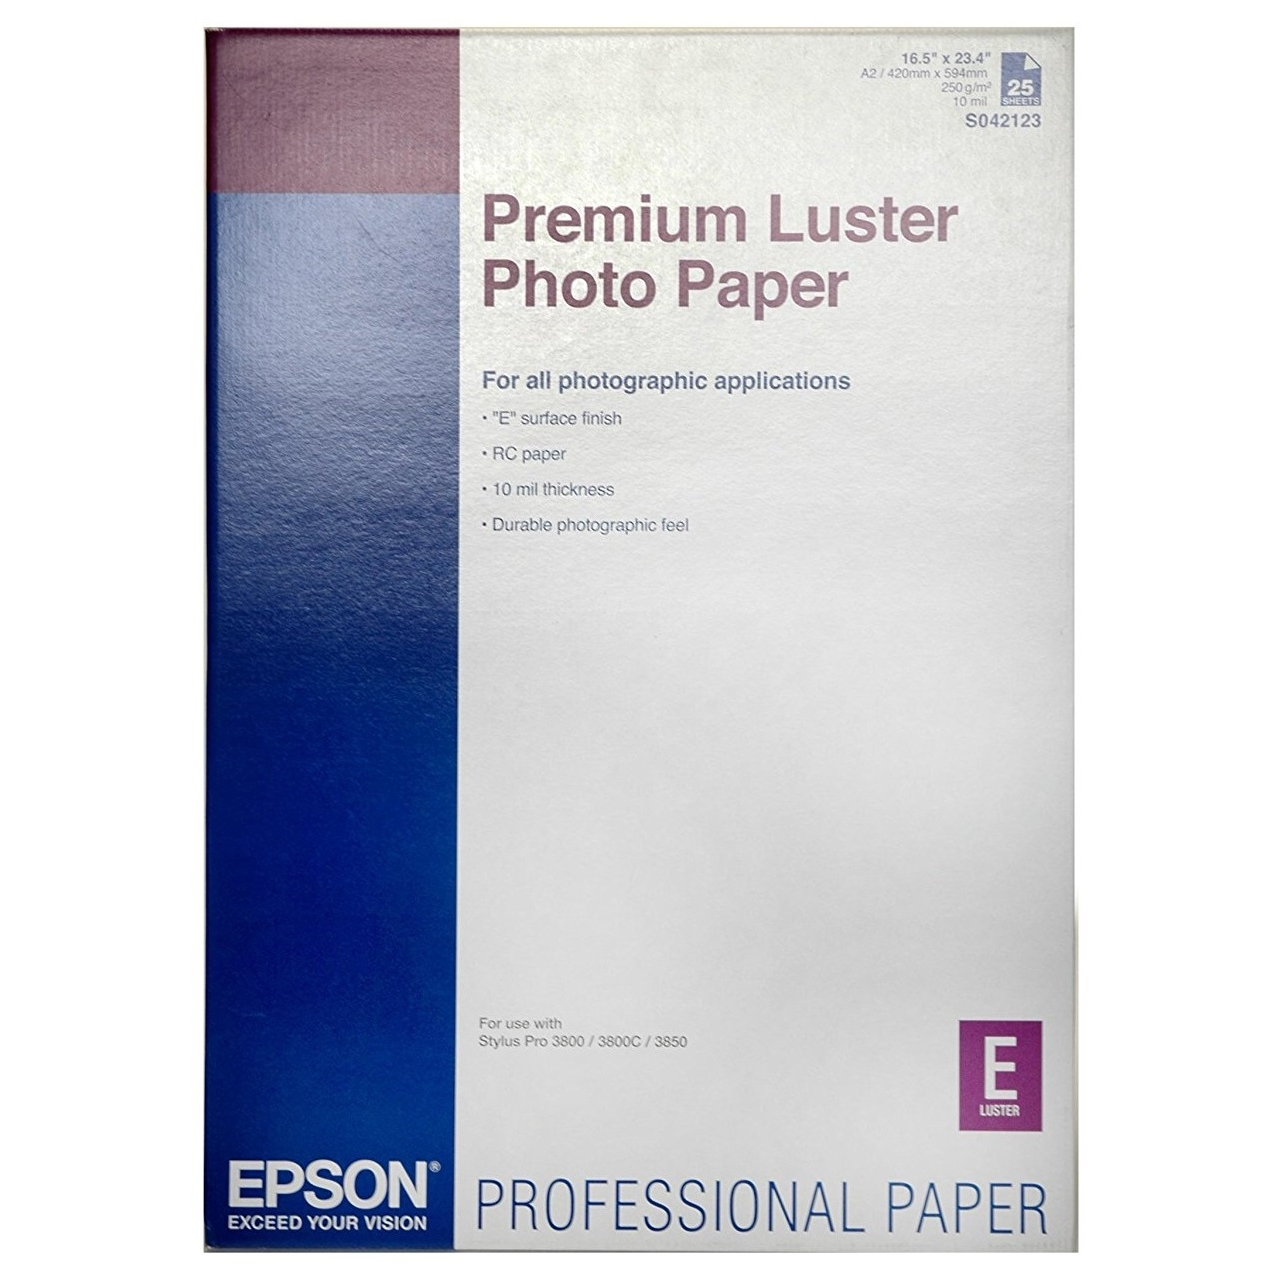 photo paper for epson printer